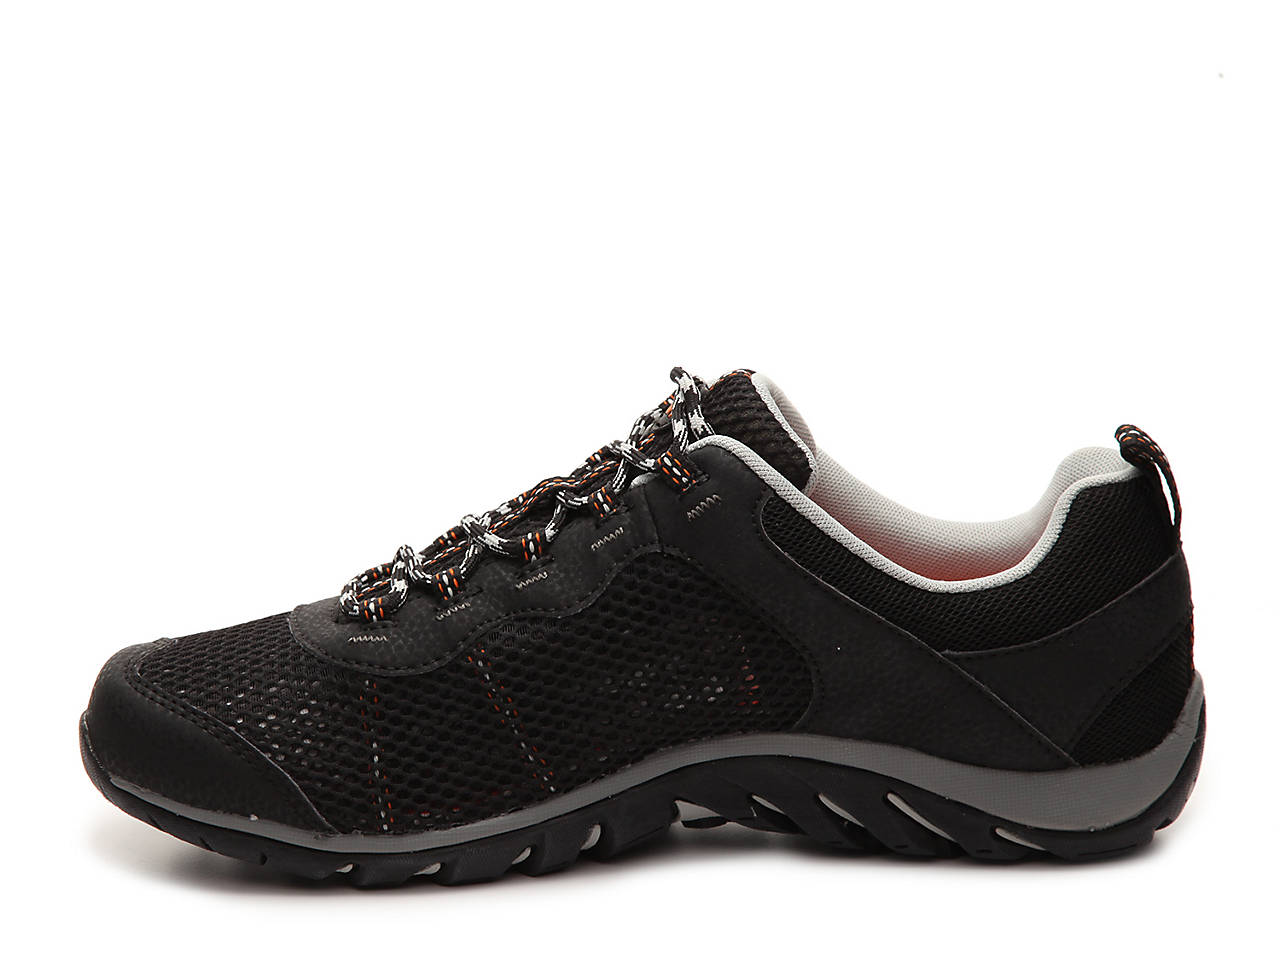 da1a0979288d2 Riverbed Trail Shoe